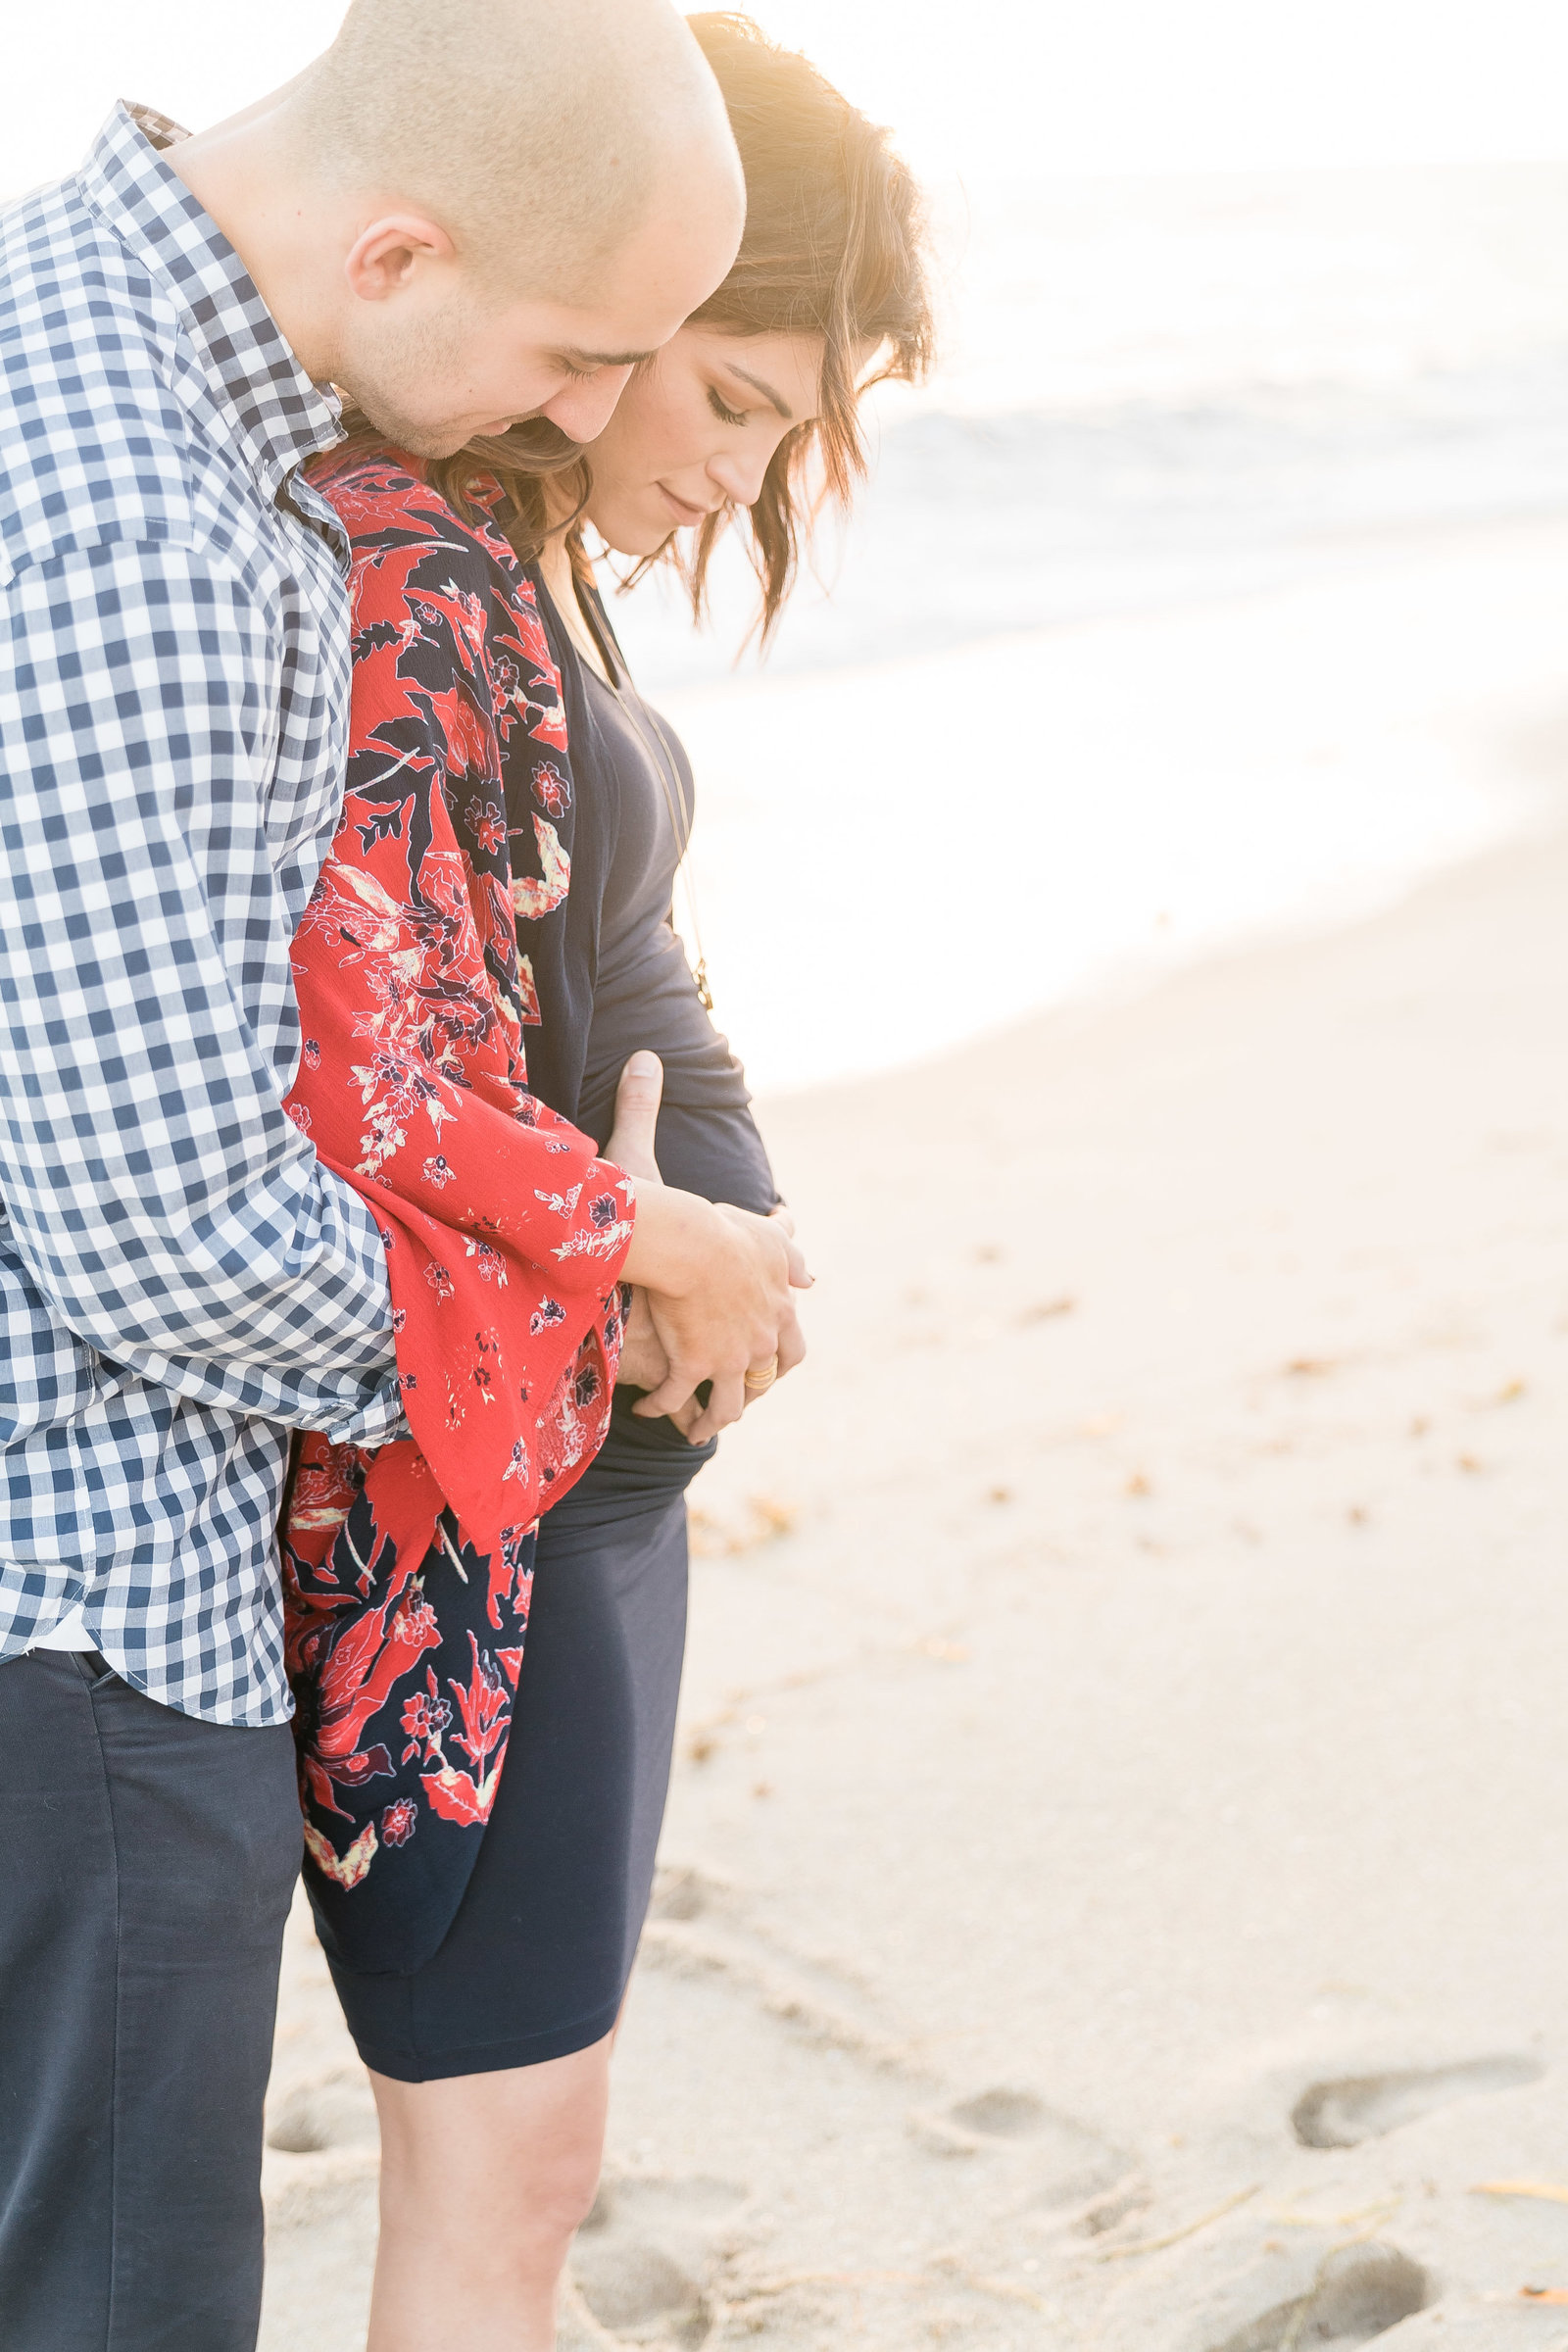 Charlotte Maternity photographer shot of couple on beach holding belly